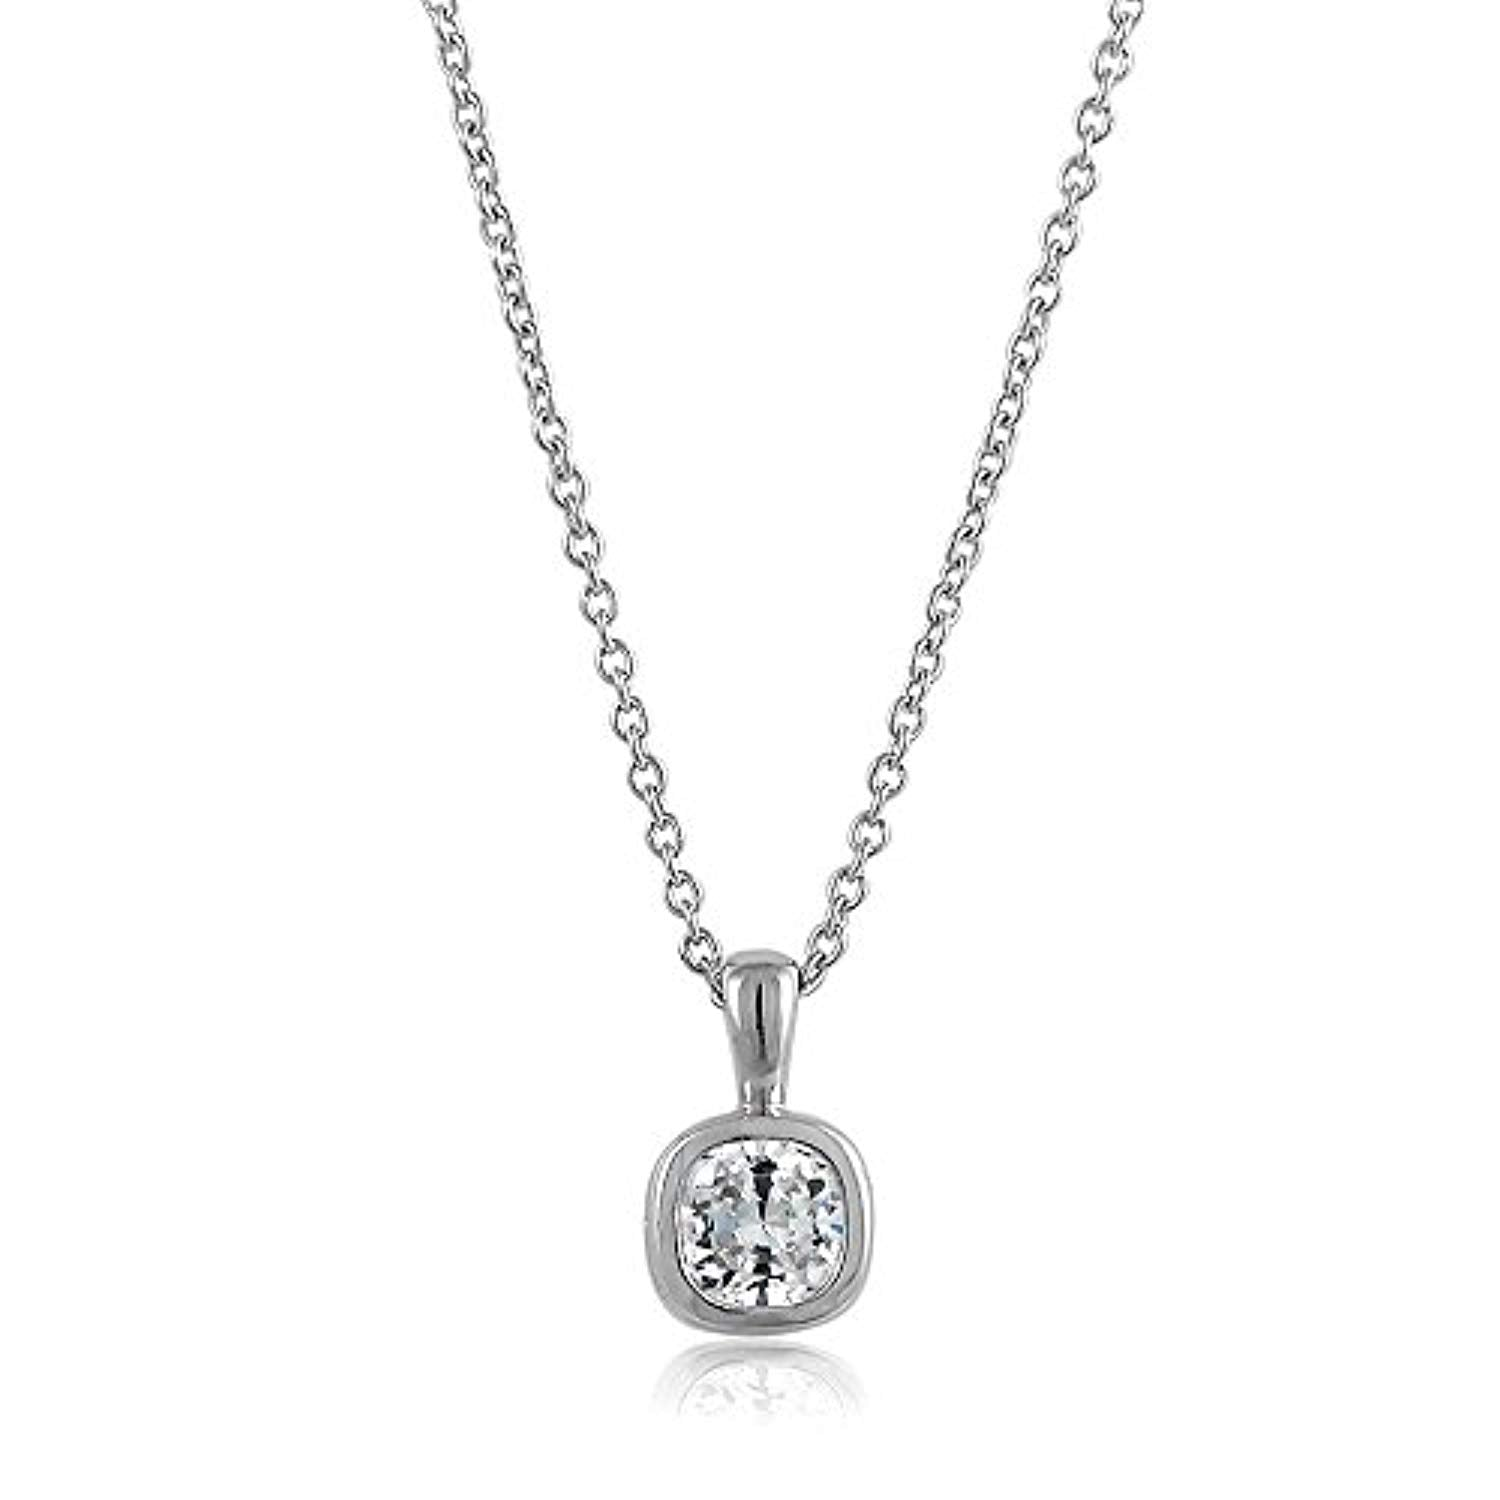 Silver Cushion Cut  CZ Pendant Necklace